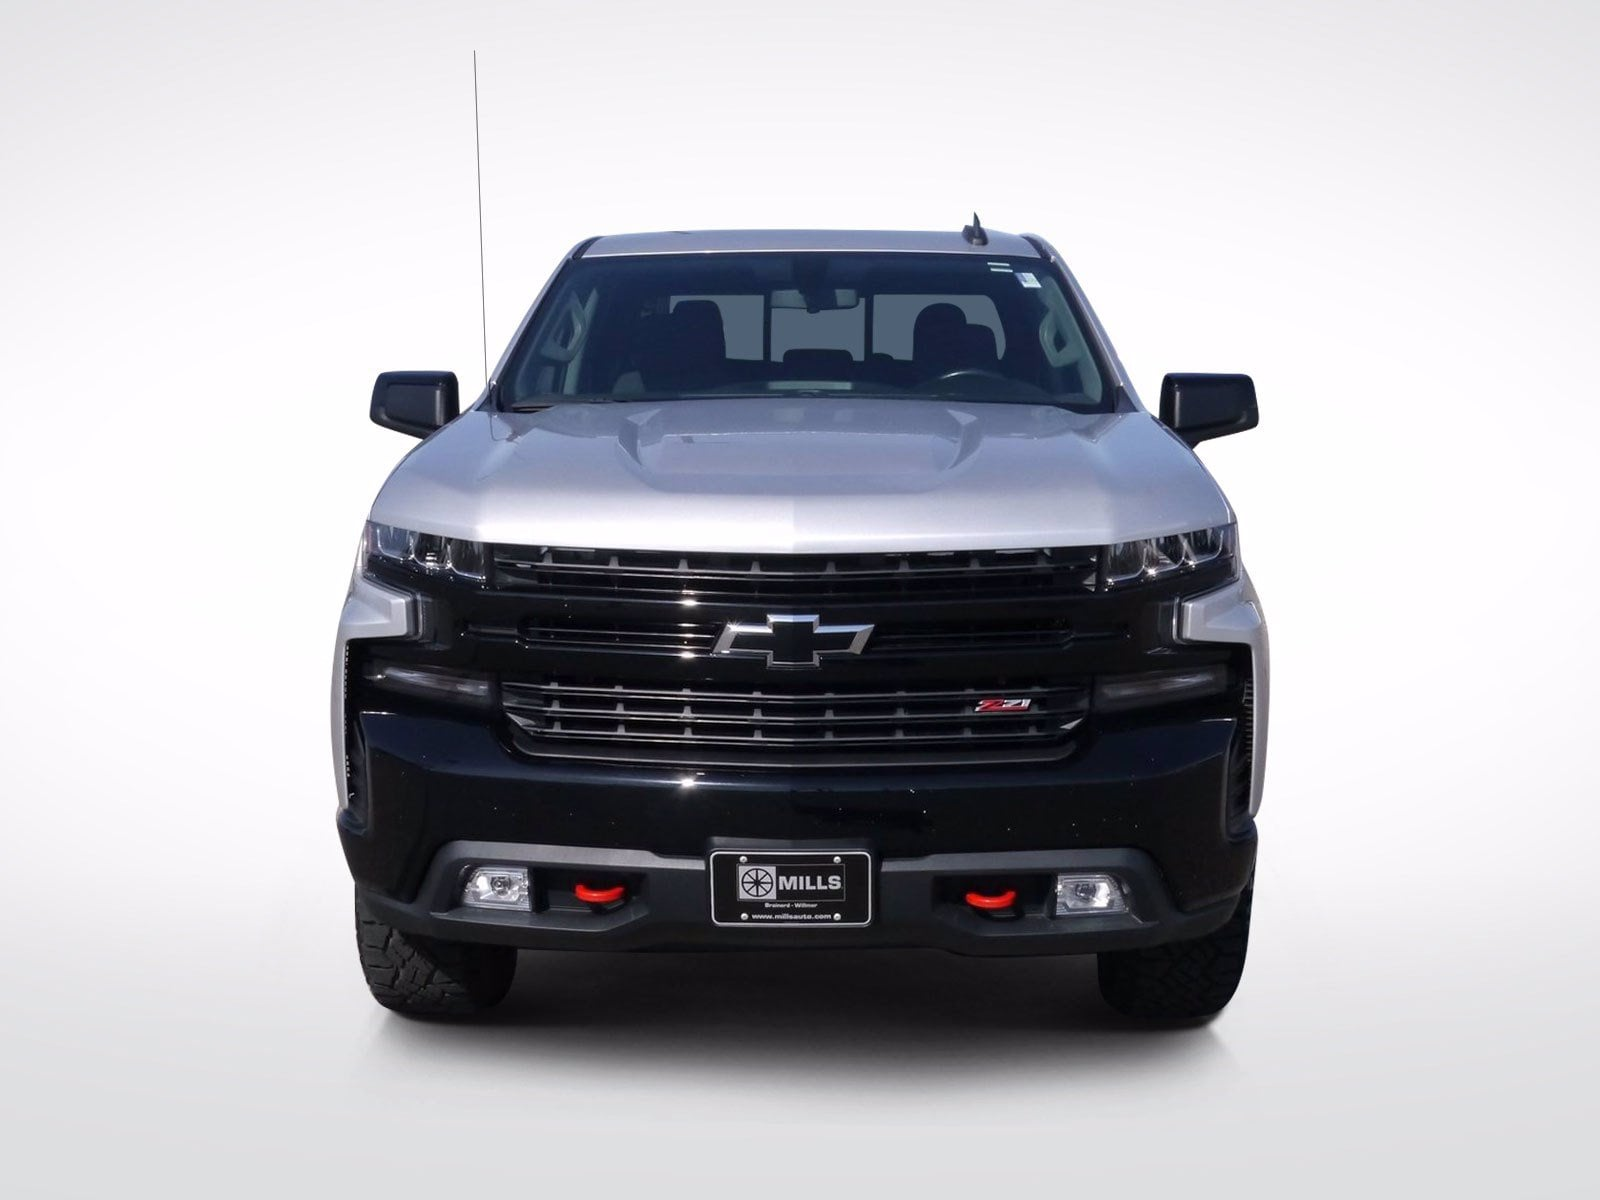 Used 2019 Chevrolet Silverado 1500 LT Trail Boss with VIN 3GCPYFED2KG201872 for sale in Baxter, Minnesota